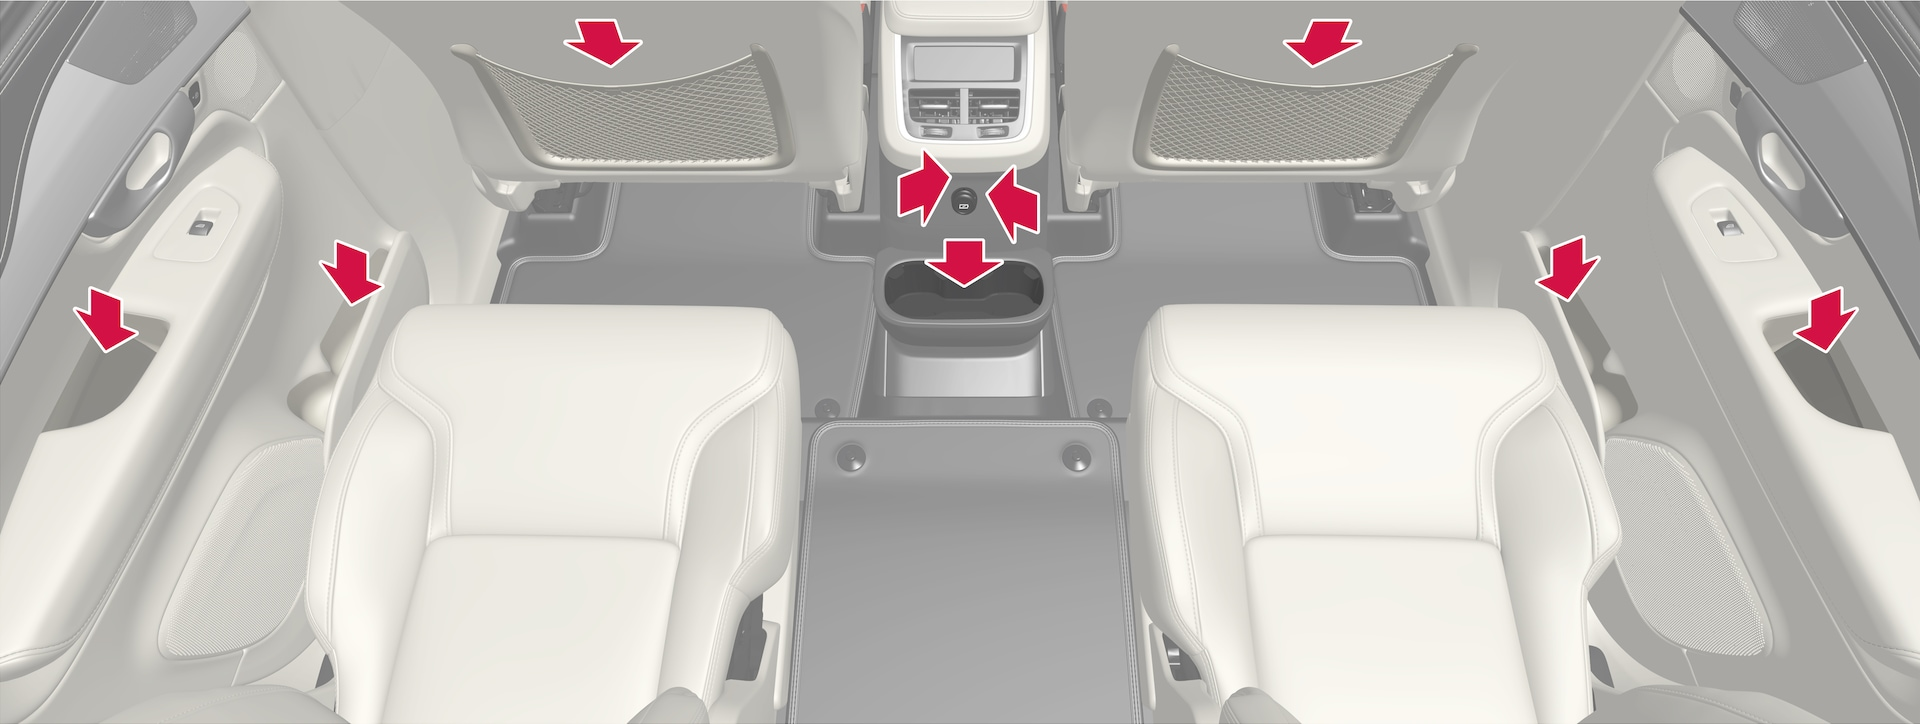 P5-2017–Interior–Overview second seat row and tunnel console - 6 seats car